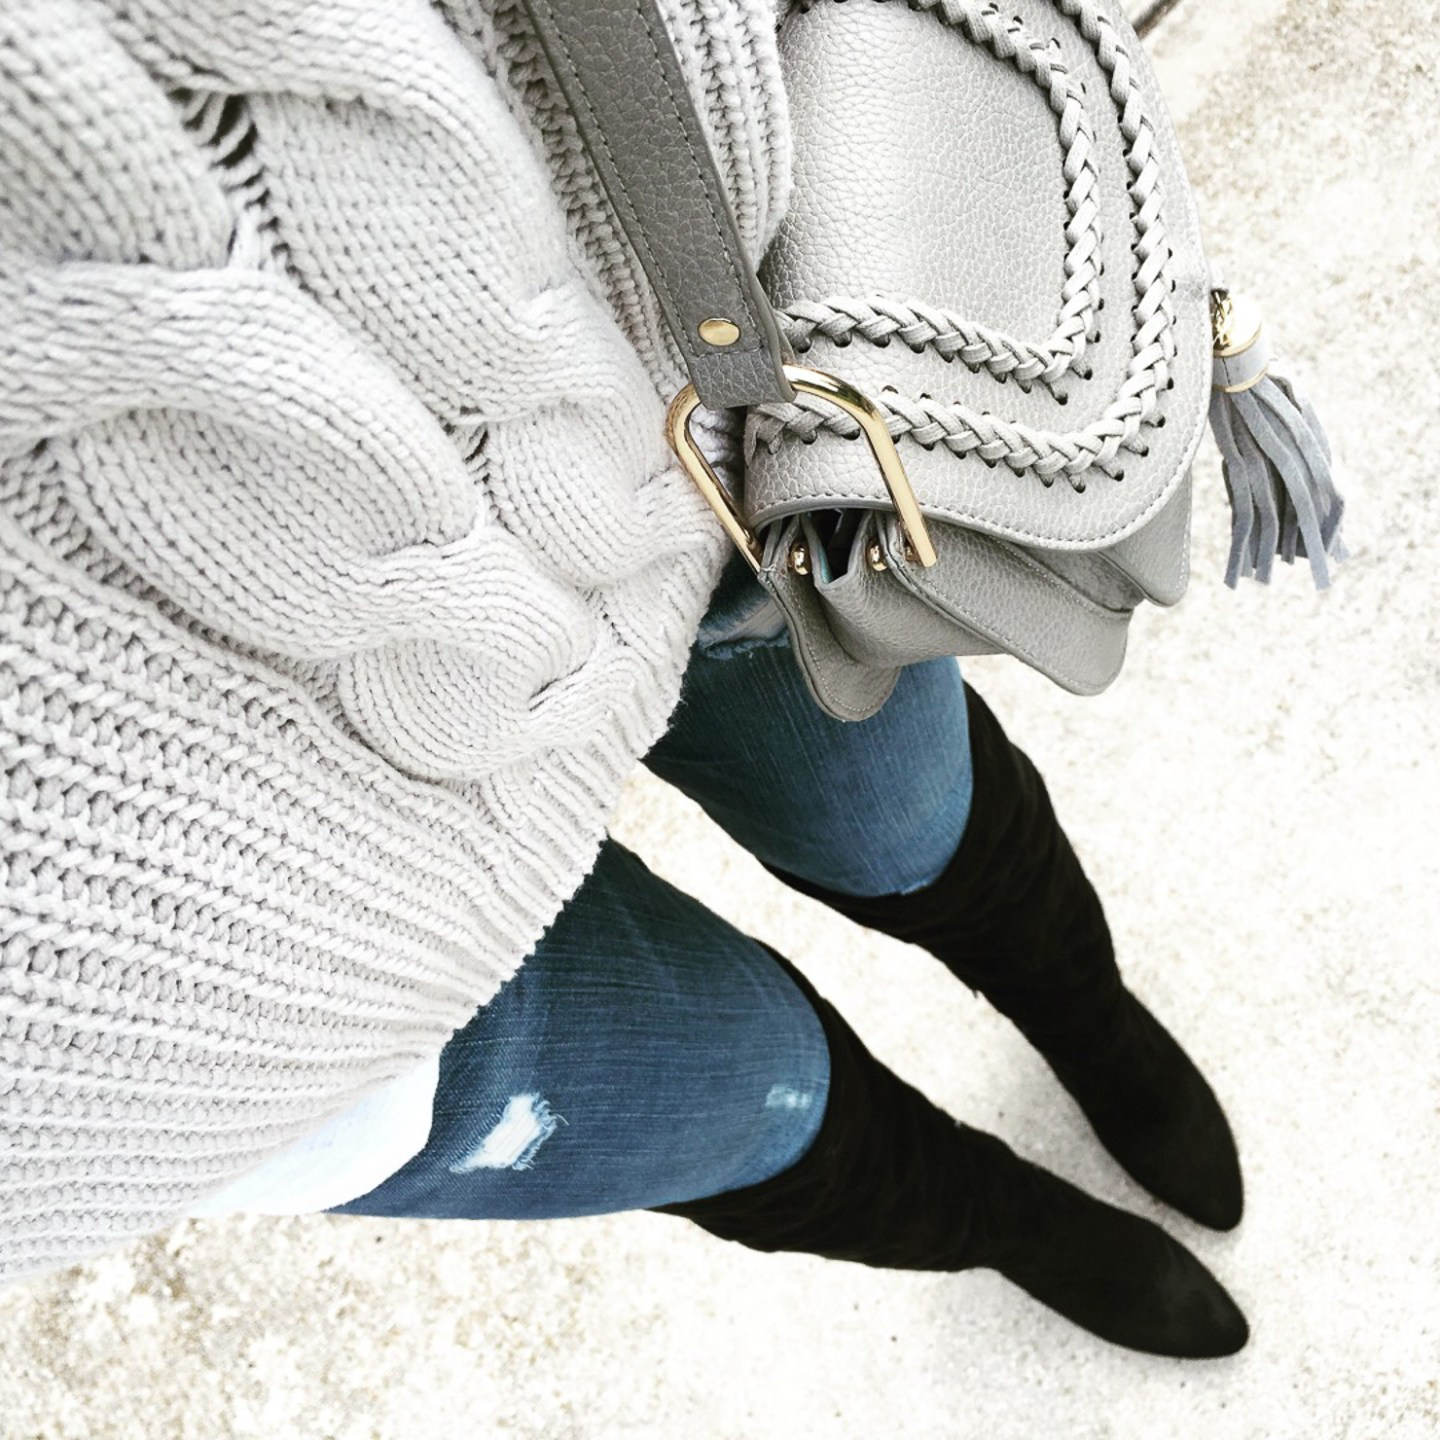 fwis-over-the-knee-boots-fall-fashion-wishes-and-reality-instagram